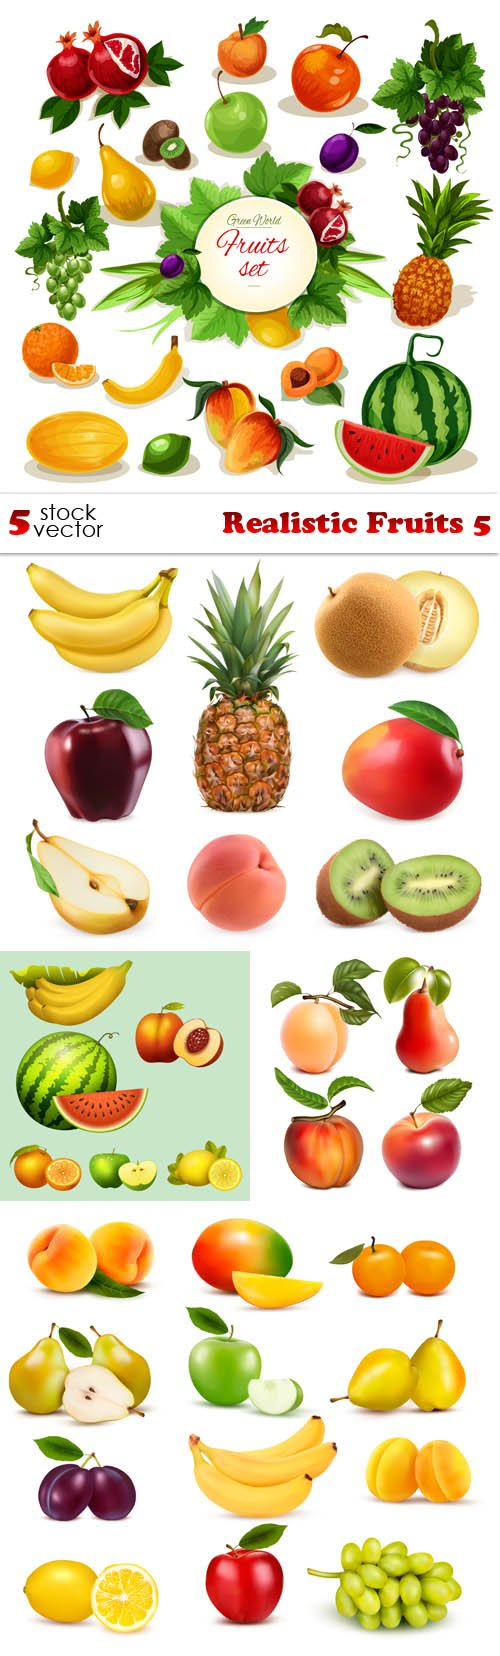 Vectors - Realistic Fruits 5